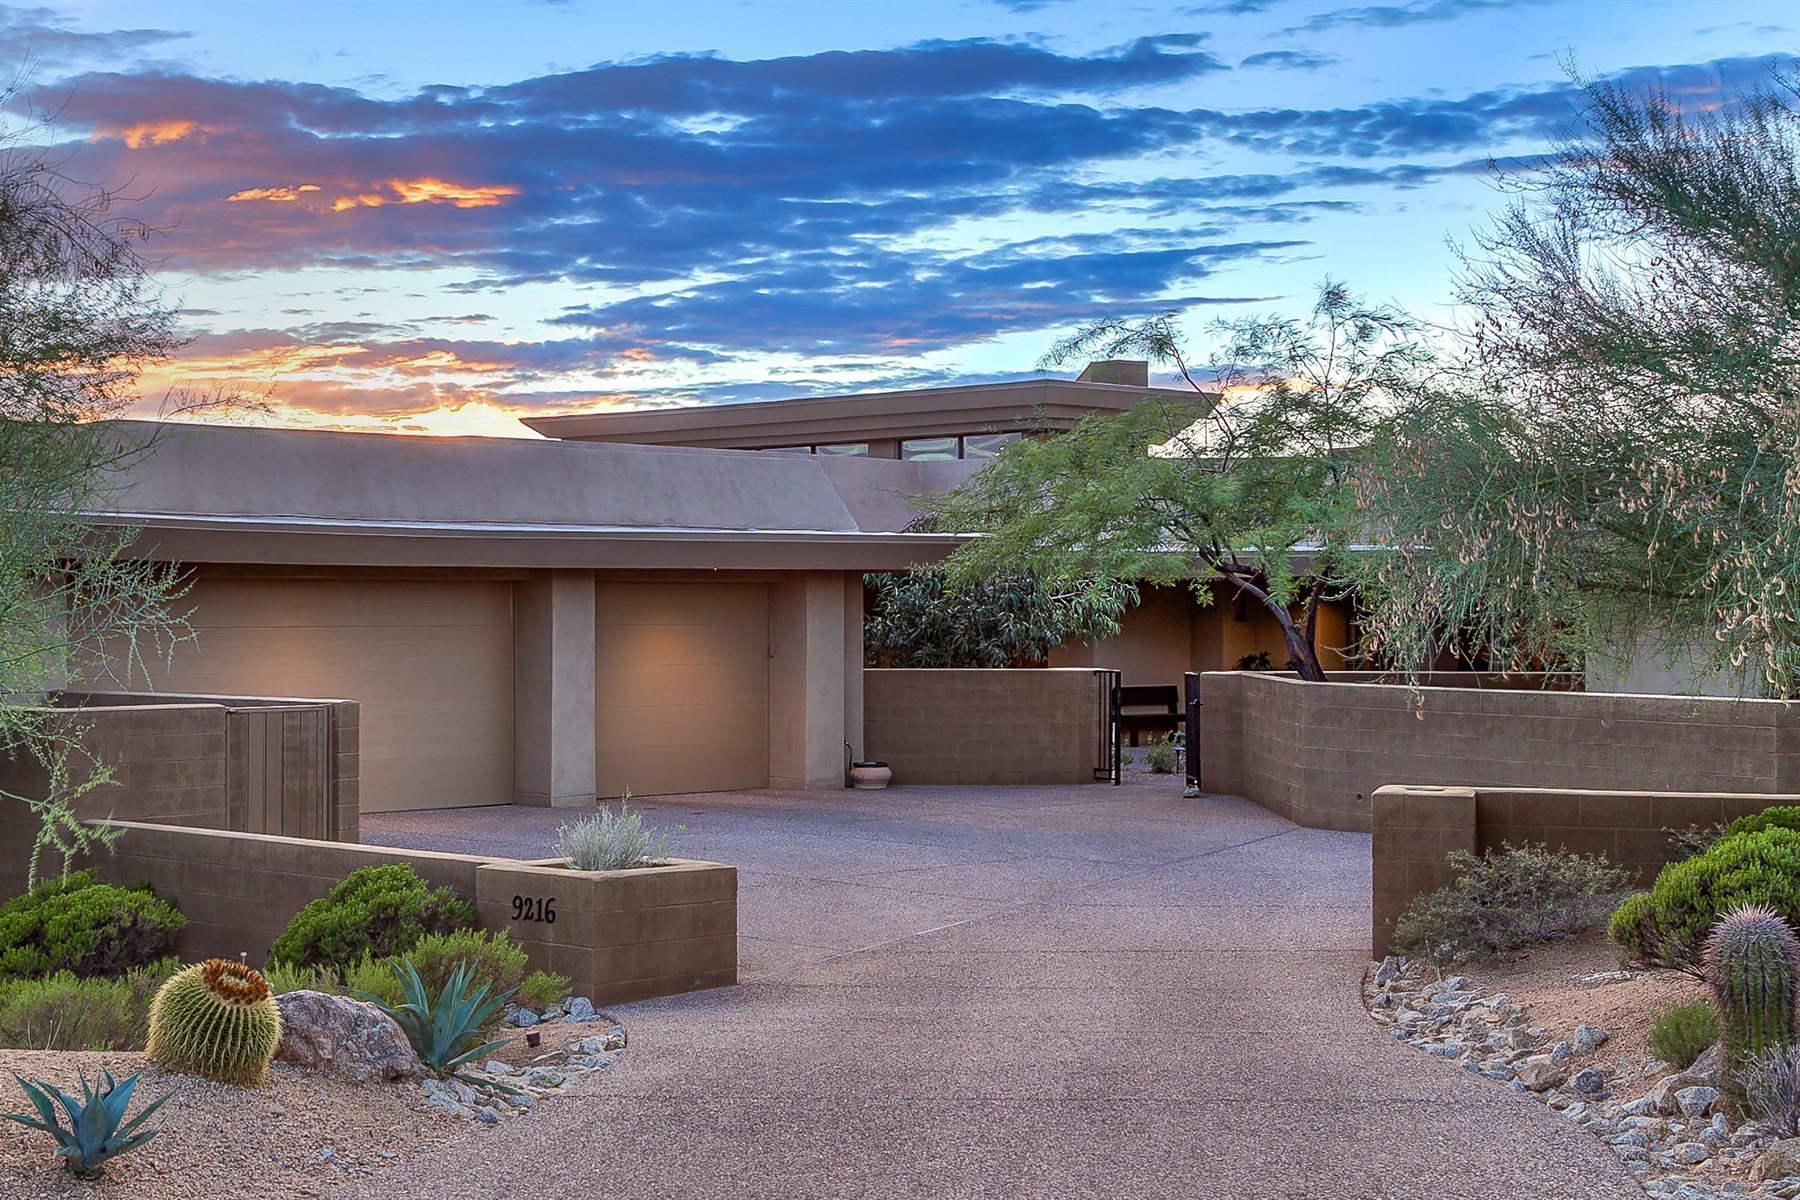 sales property at custom contemporary has five bedrooms, 4.5 baths including casita